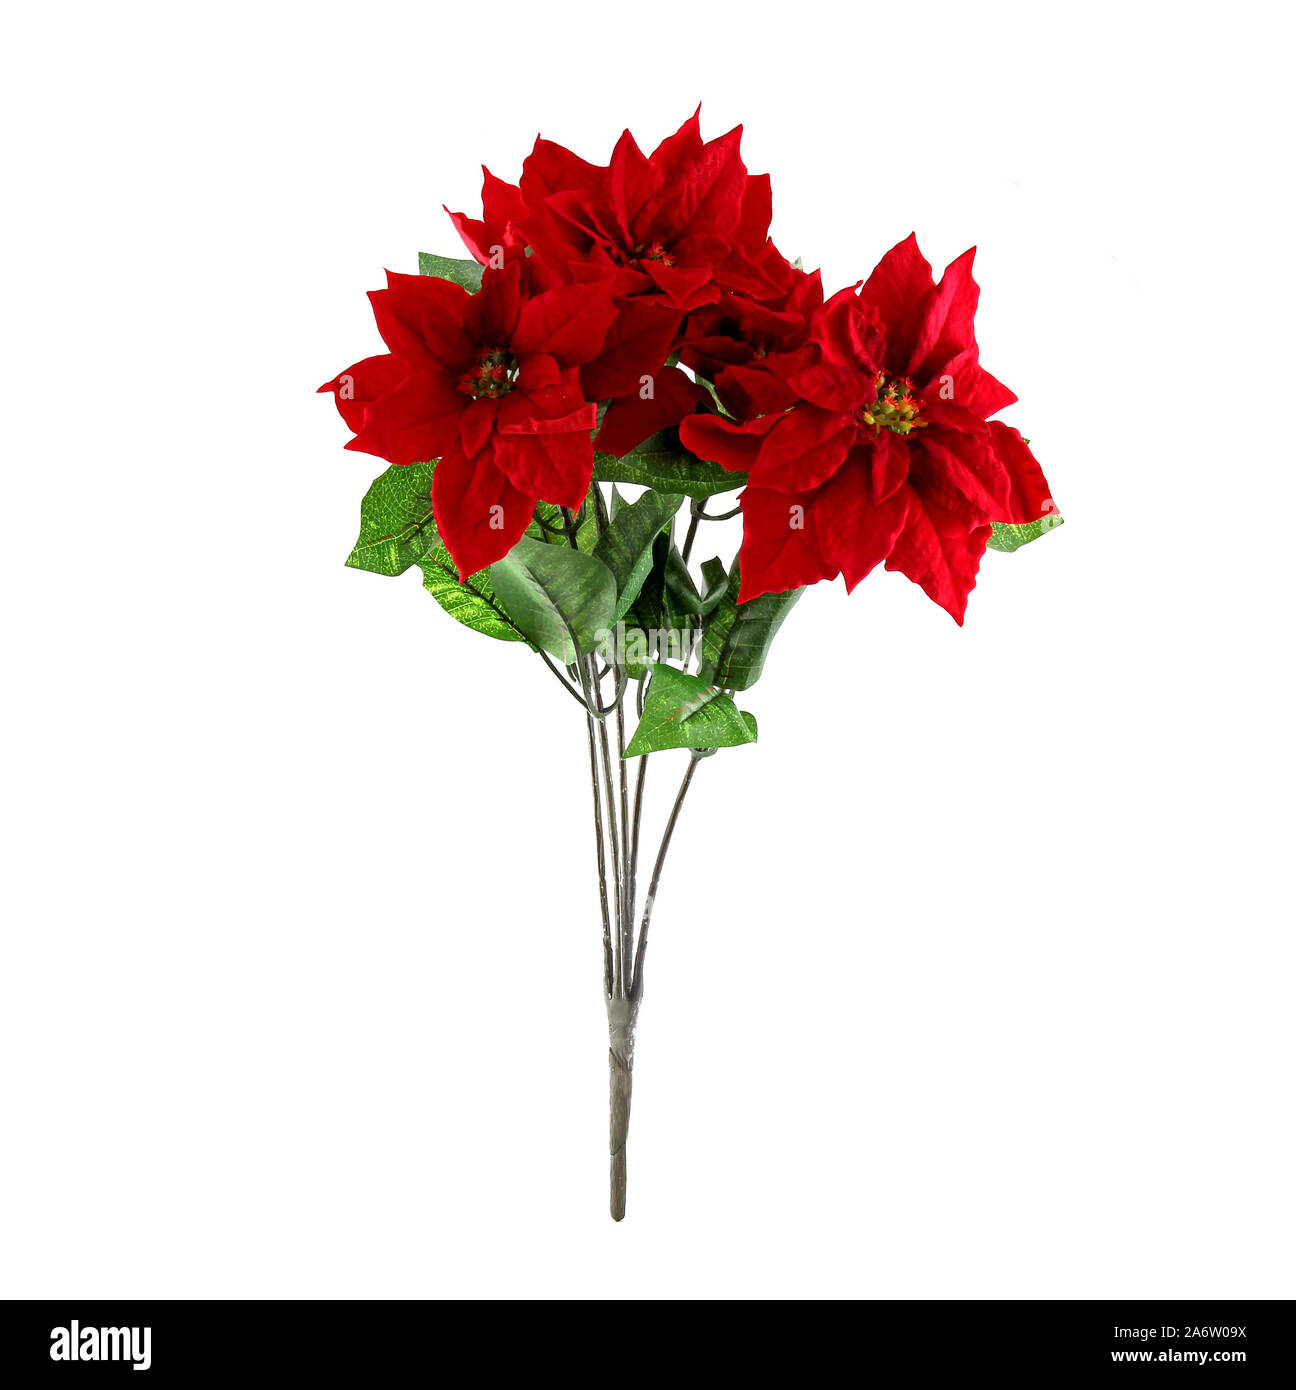 Xmas Poinsettia Isolated On White Background This Flower Is Known As Christmas Star Stock Photo Alamy